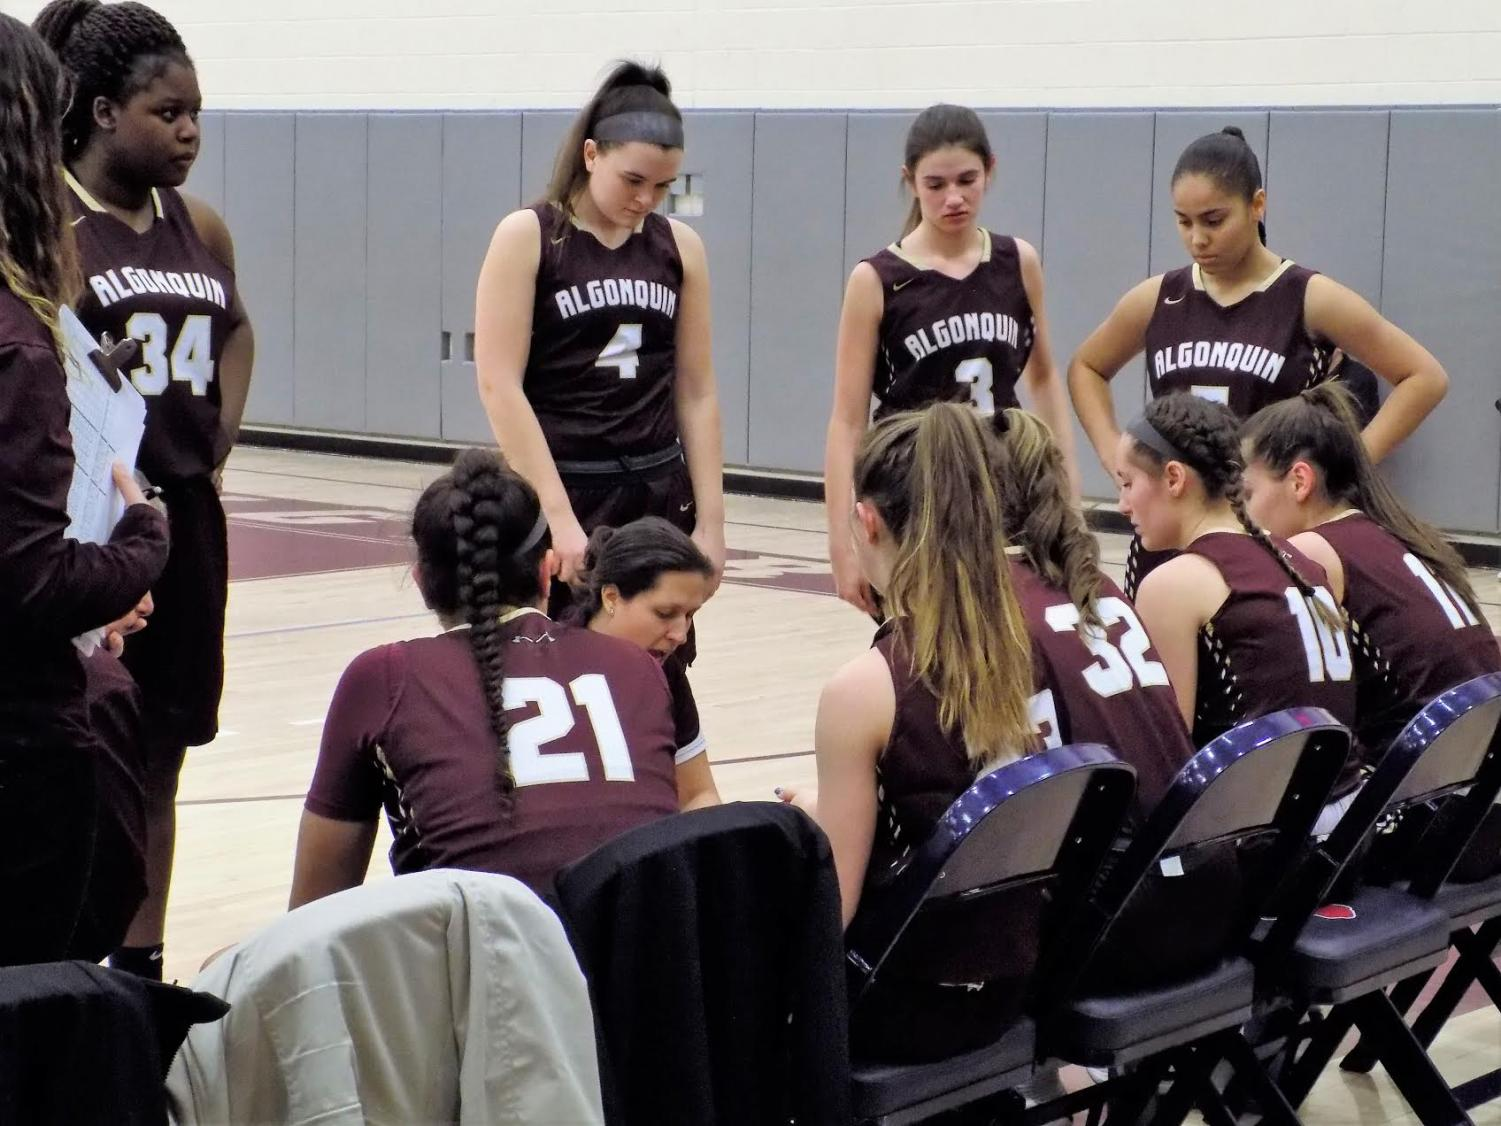 Coach Mel Fustino gives a pep talk as the team gets ready to get back into the game against Westborough on February 19. The team played hard for the win, with the final score being 63-51.